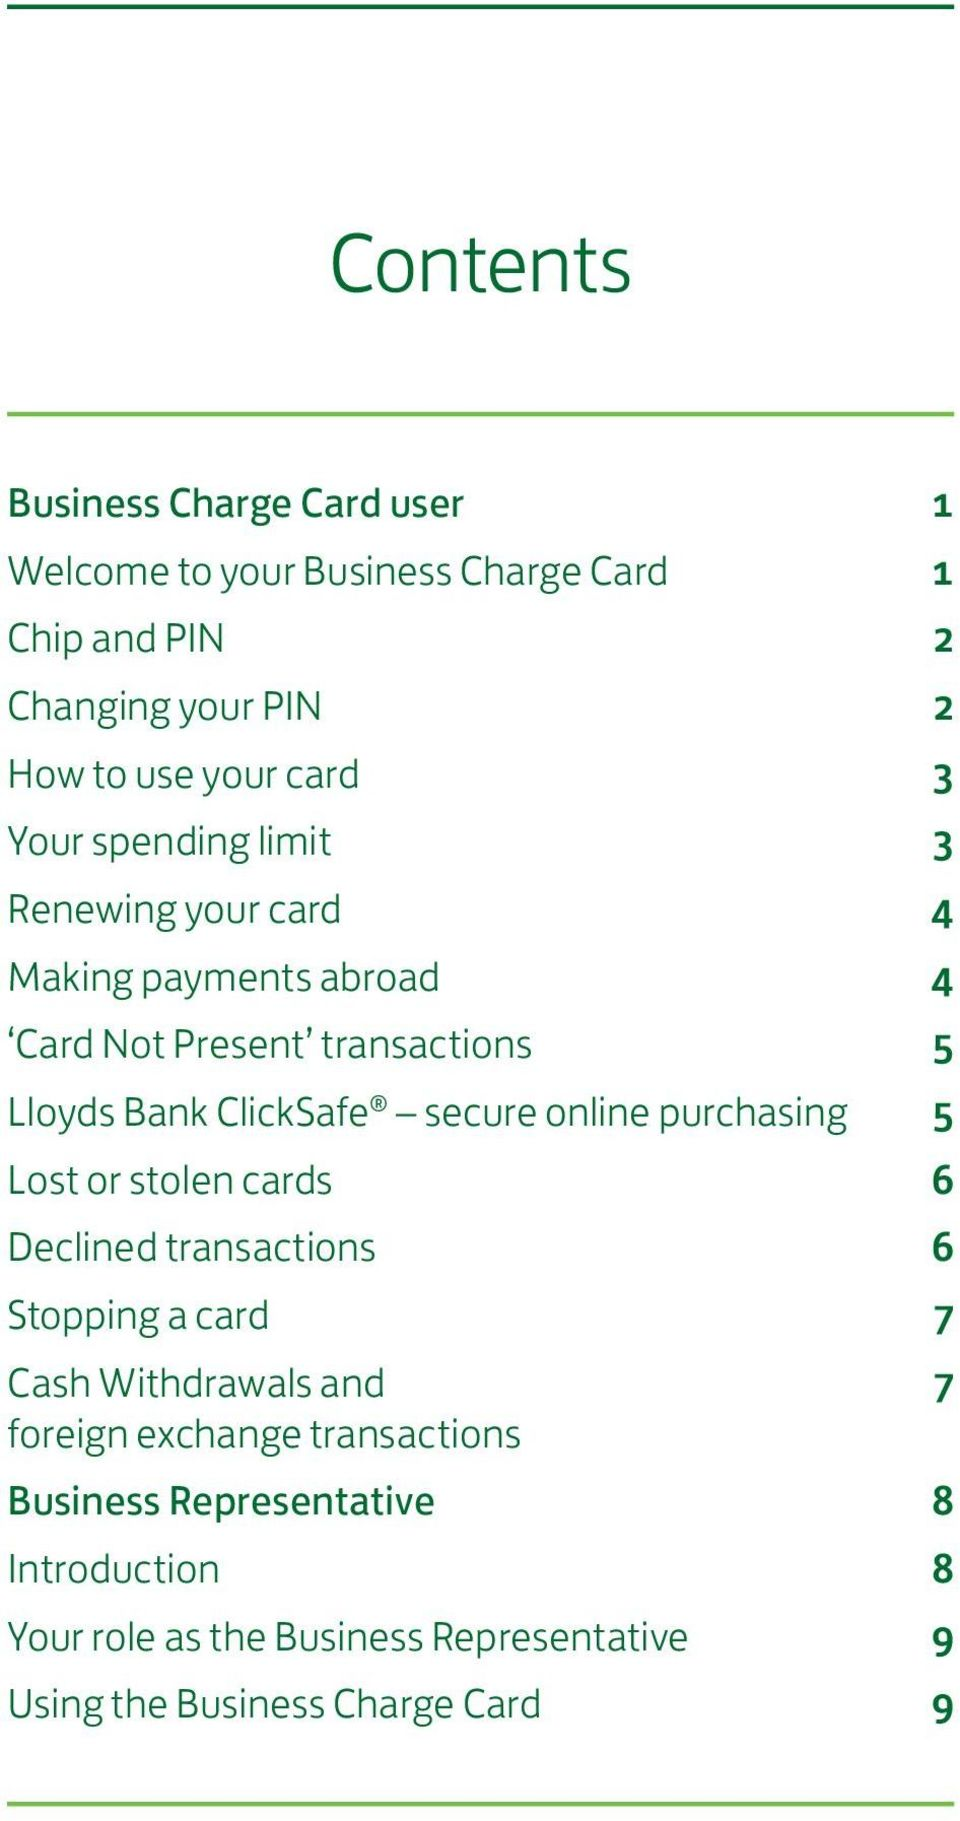 secure online purchasing 5 Lost or stolen cards 6 Declined transactions 6 Stopping a card 7 Cash Withdrawals and 7 foreign